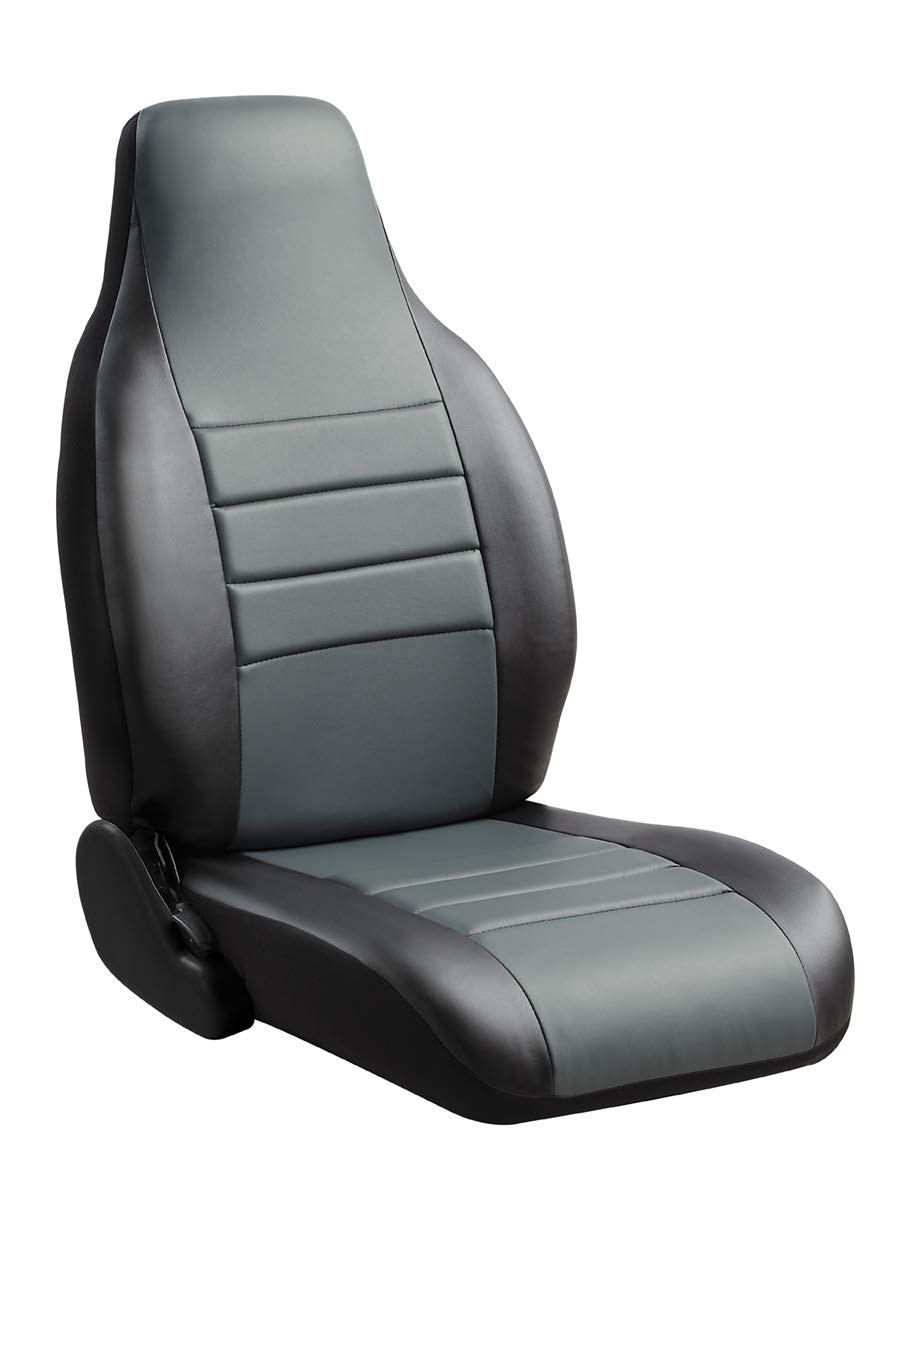 Fia SL68-31 GRAY Custom Fit Front Seat Cover Split Seat 40/20/40 - Leatherette (Black w/Gray Center Panel)